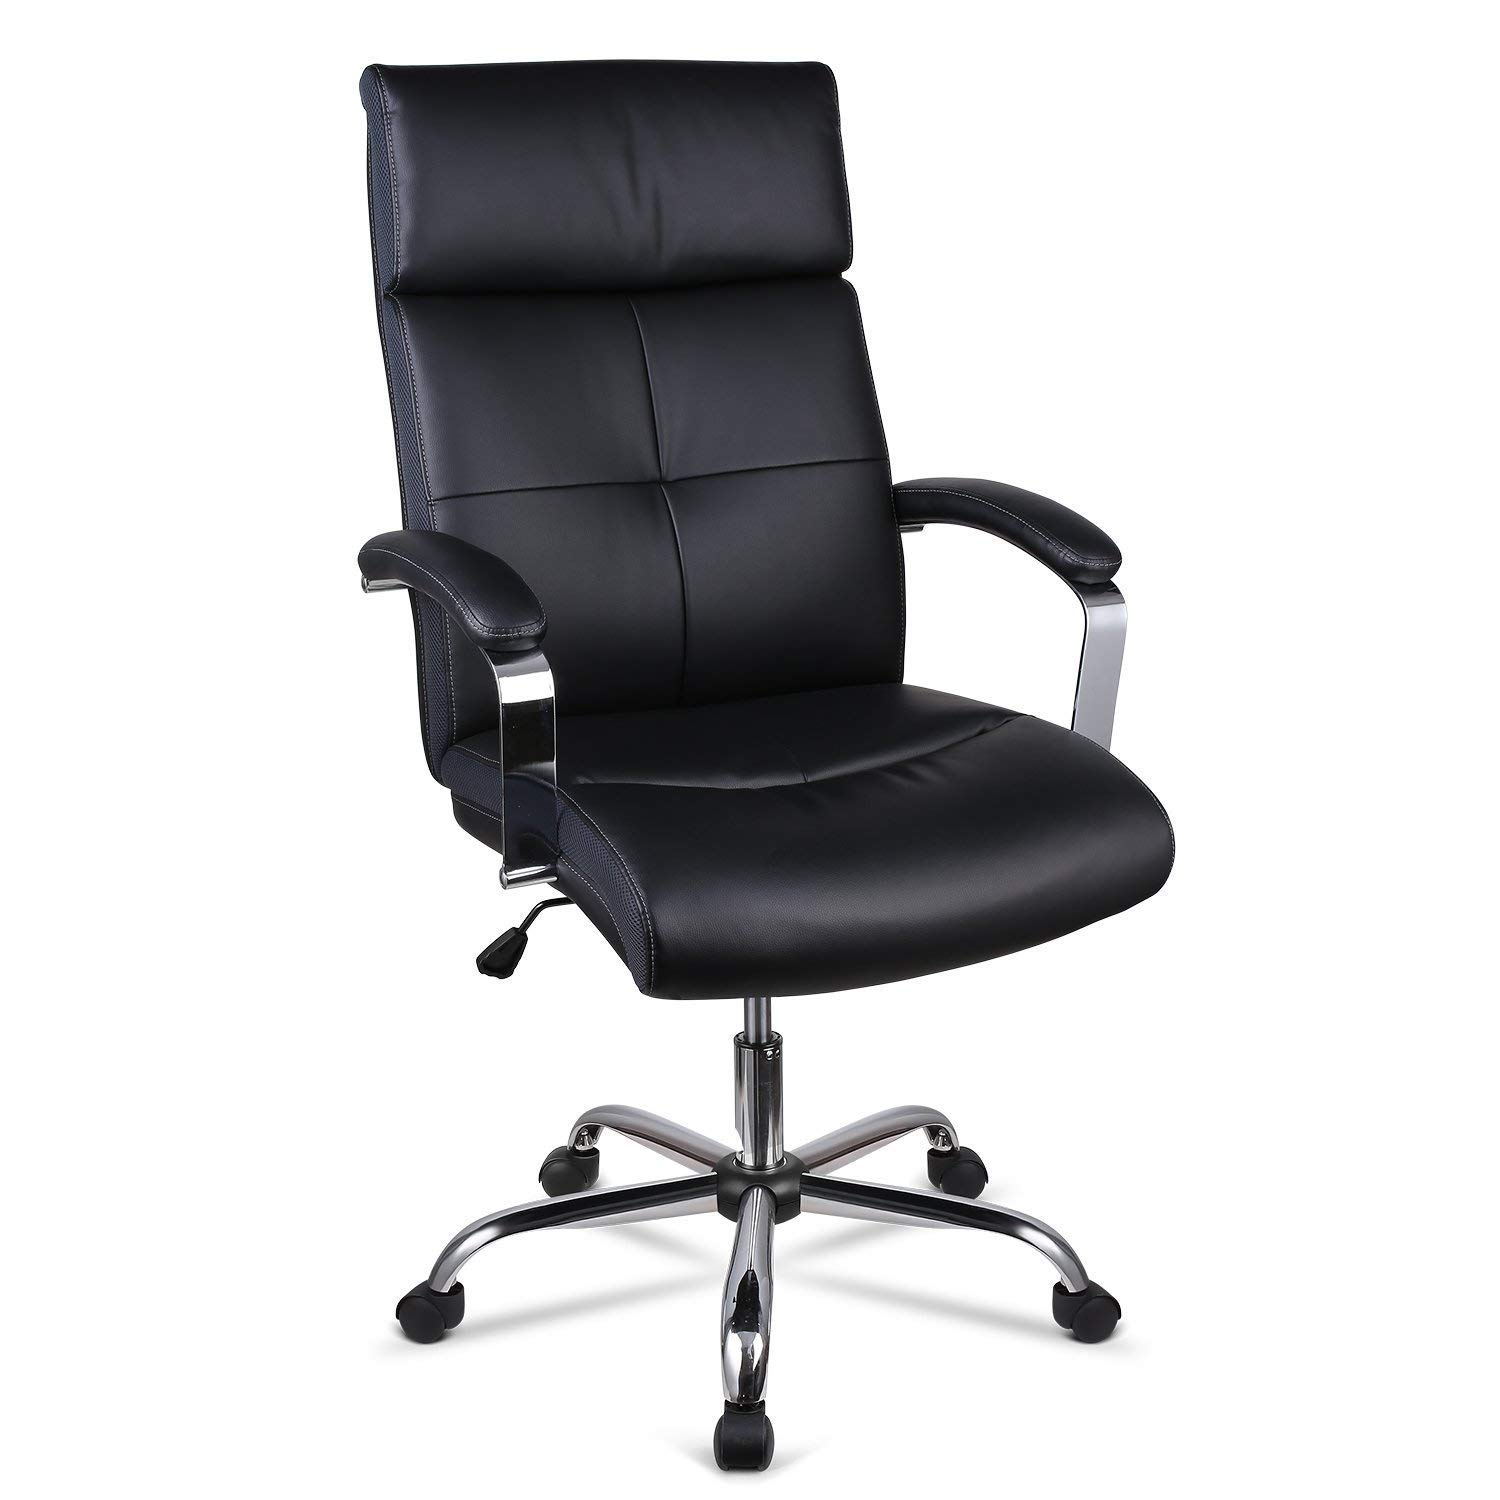 INTEY Executive Office Chair Leather